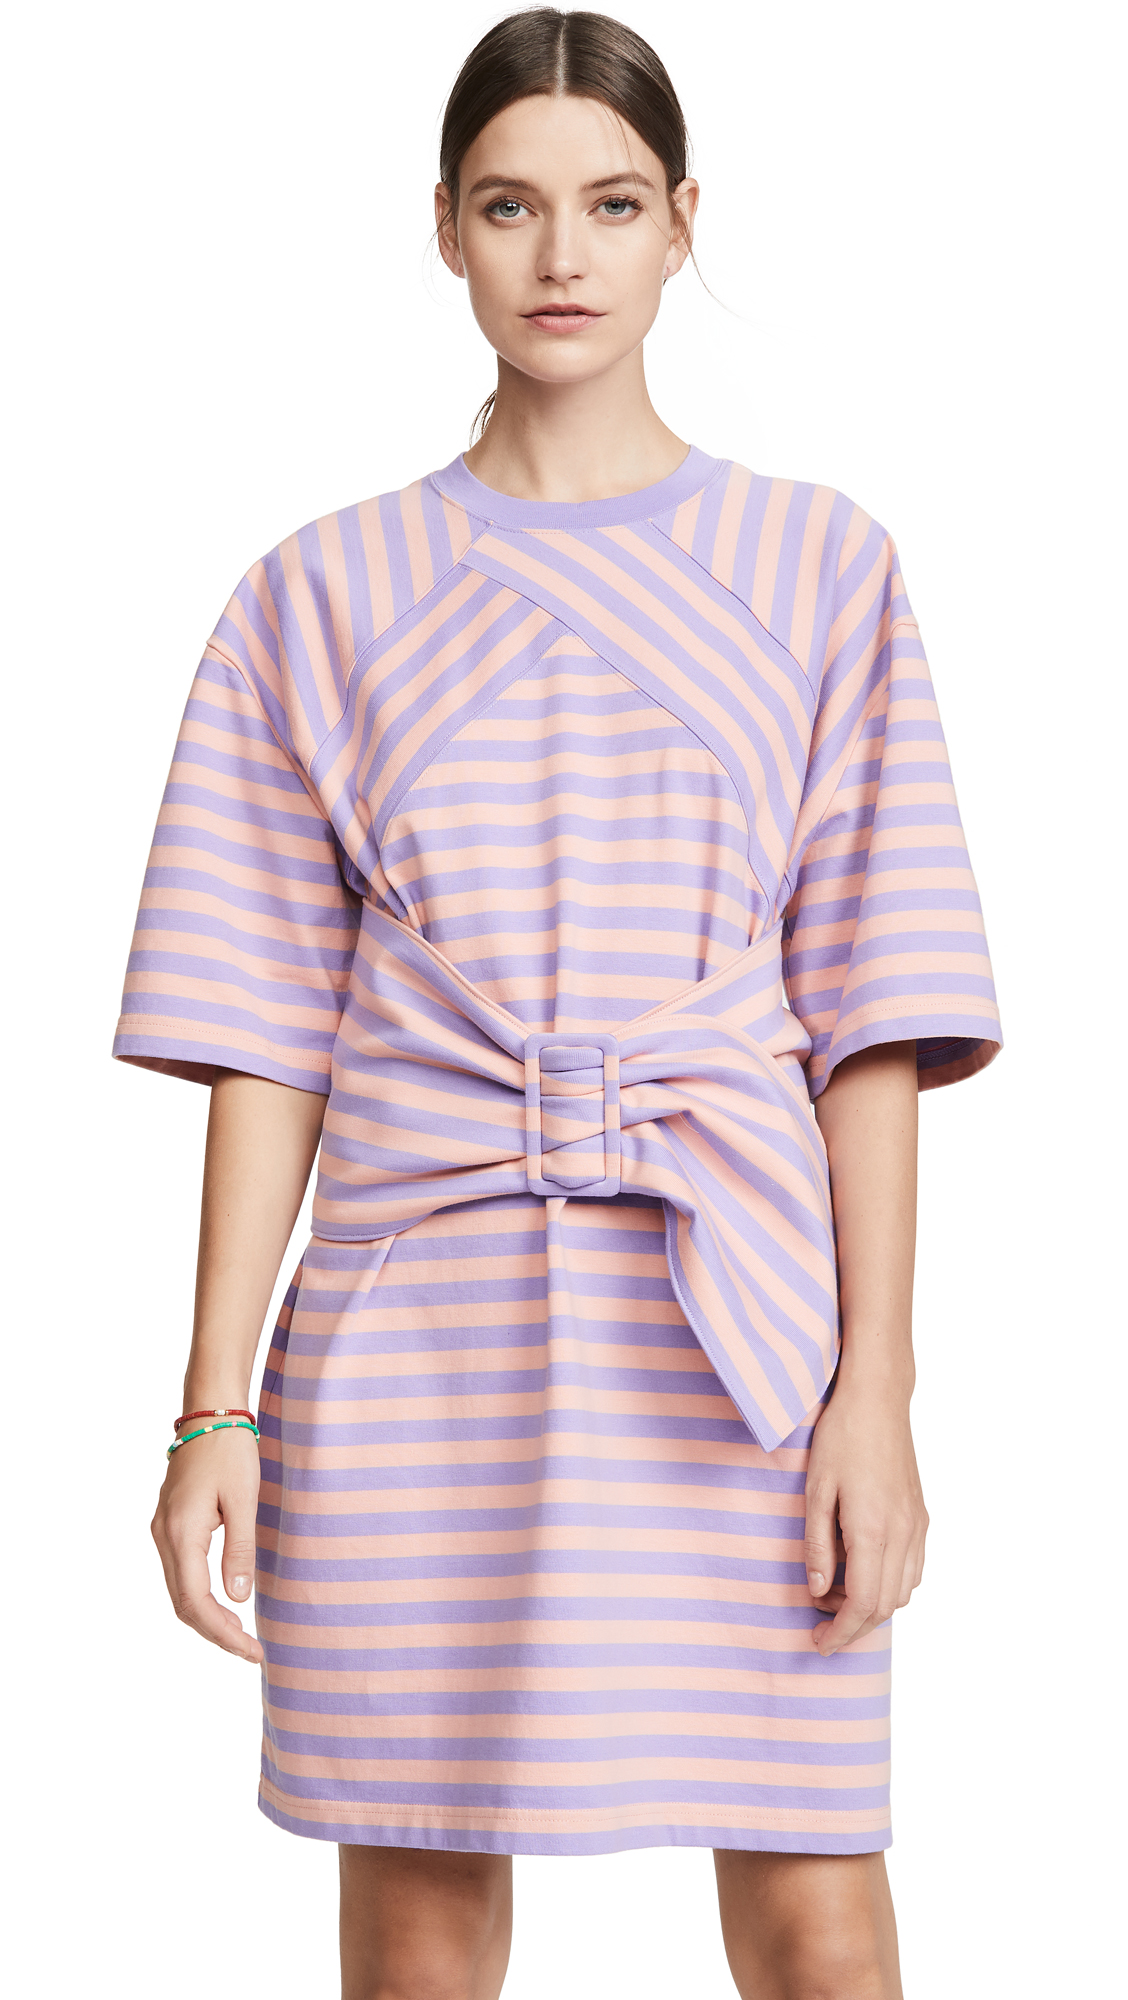 The Marc Jacobs The Striped T-Shirt Dress - 40% Off Sale